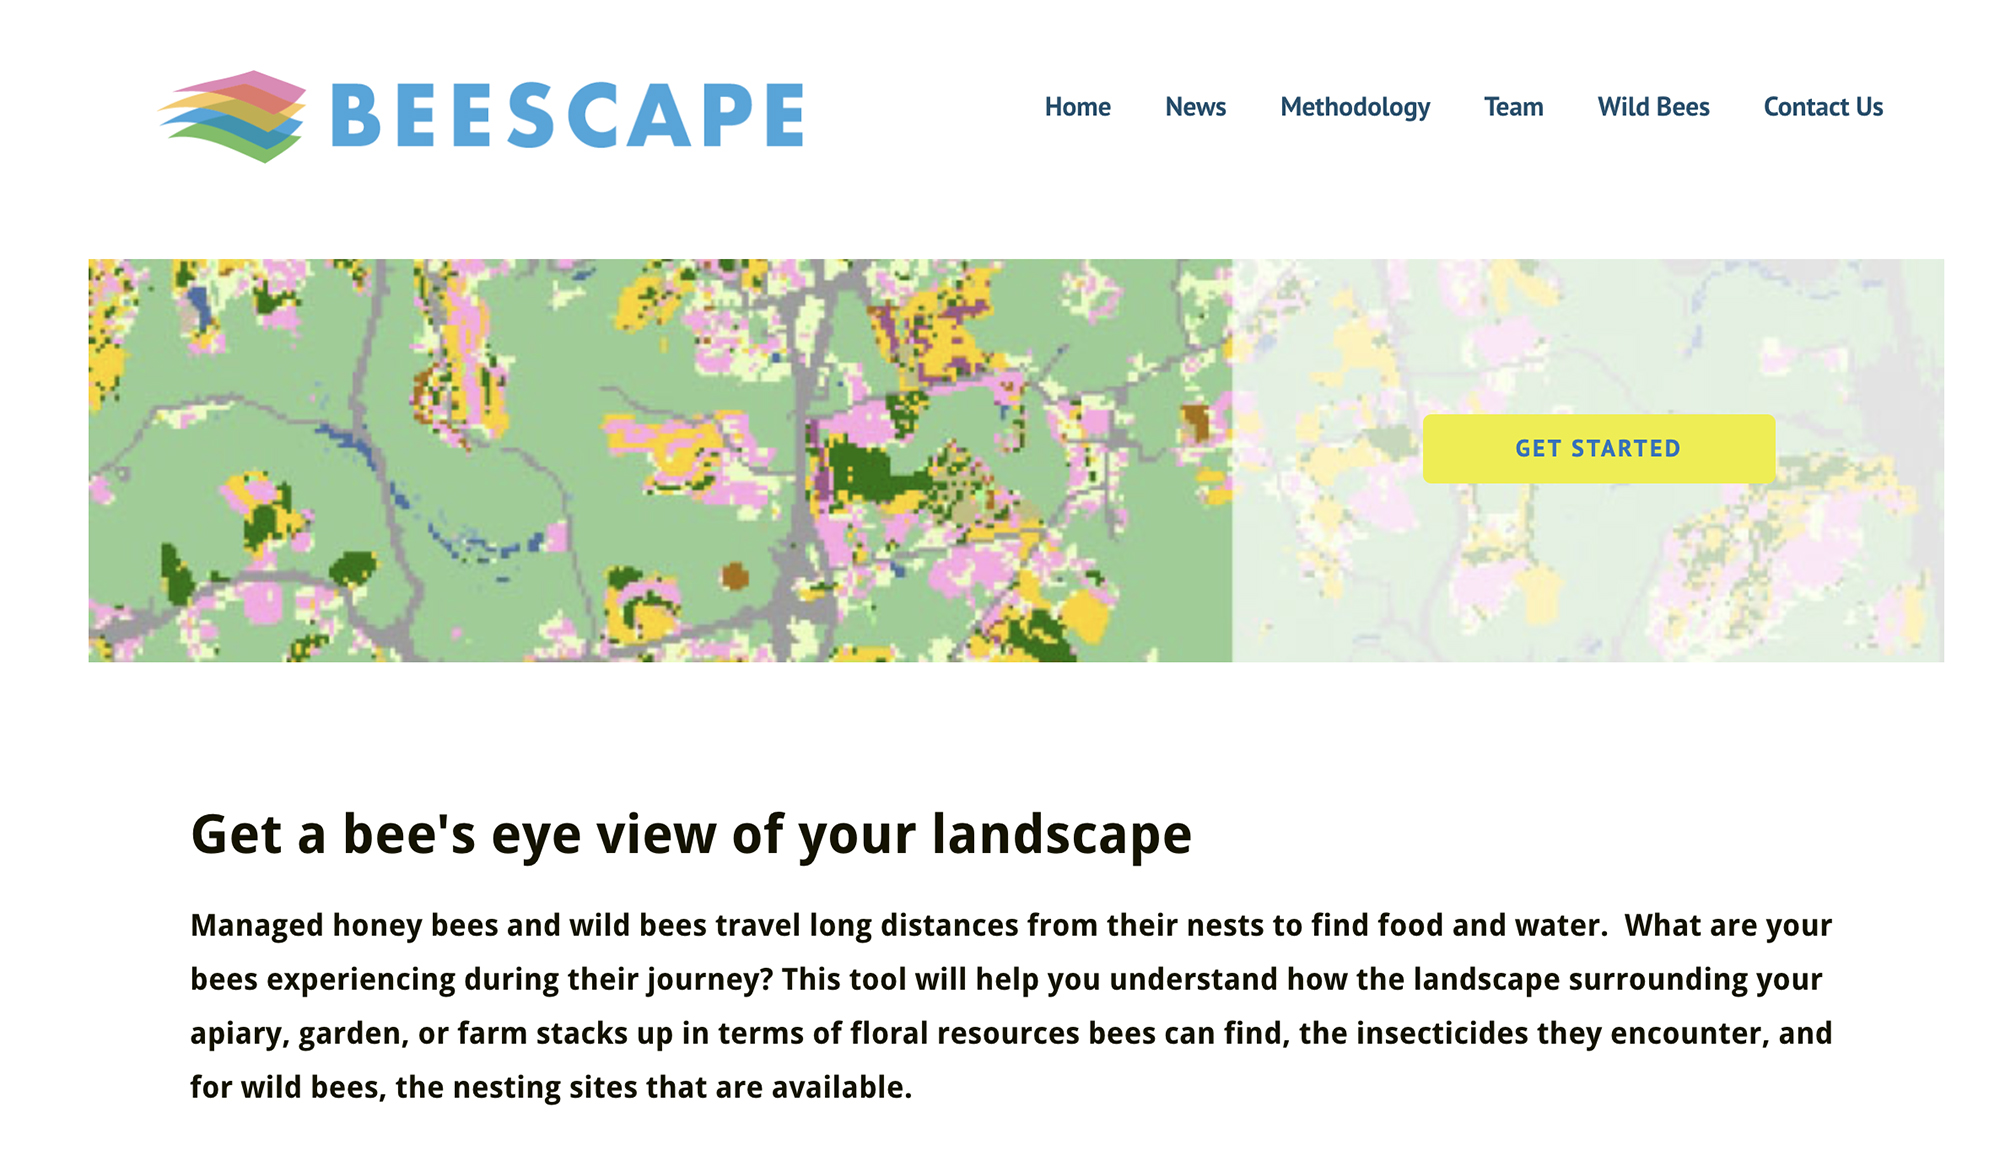 This is a picture of the Beescape website's main page.